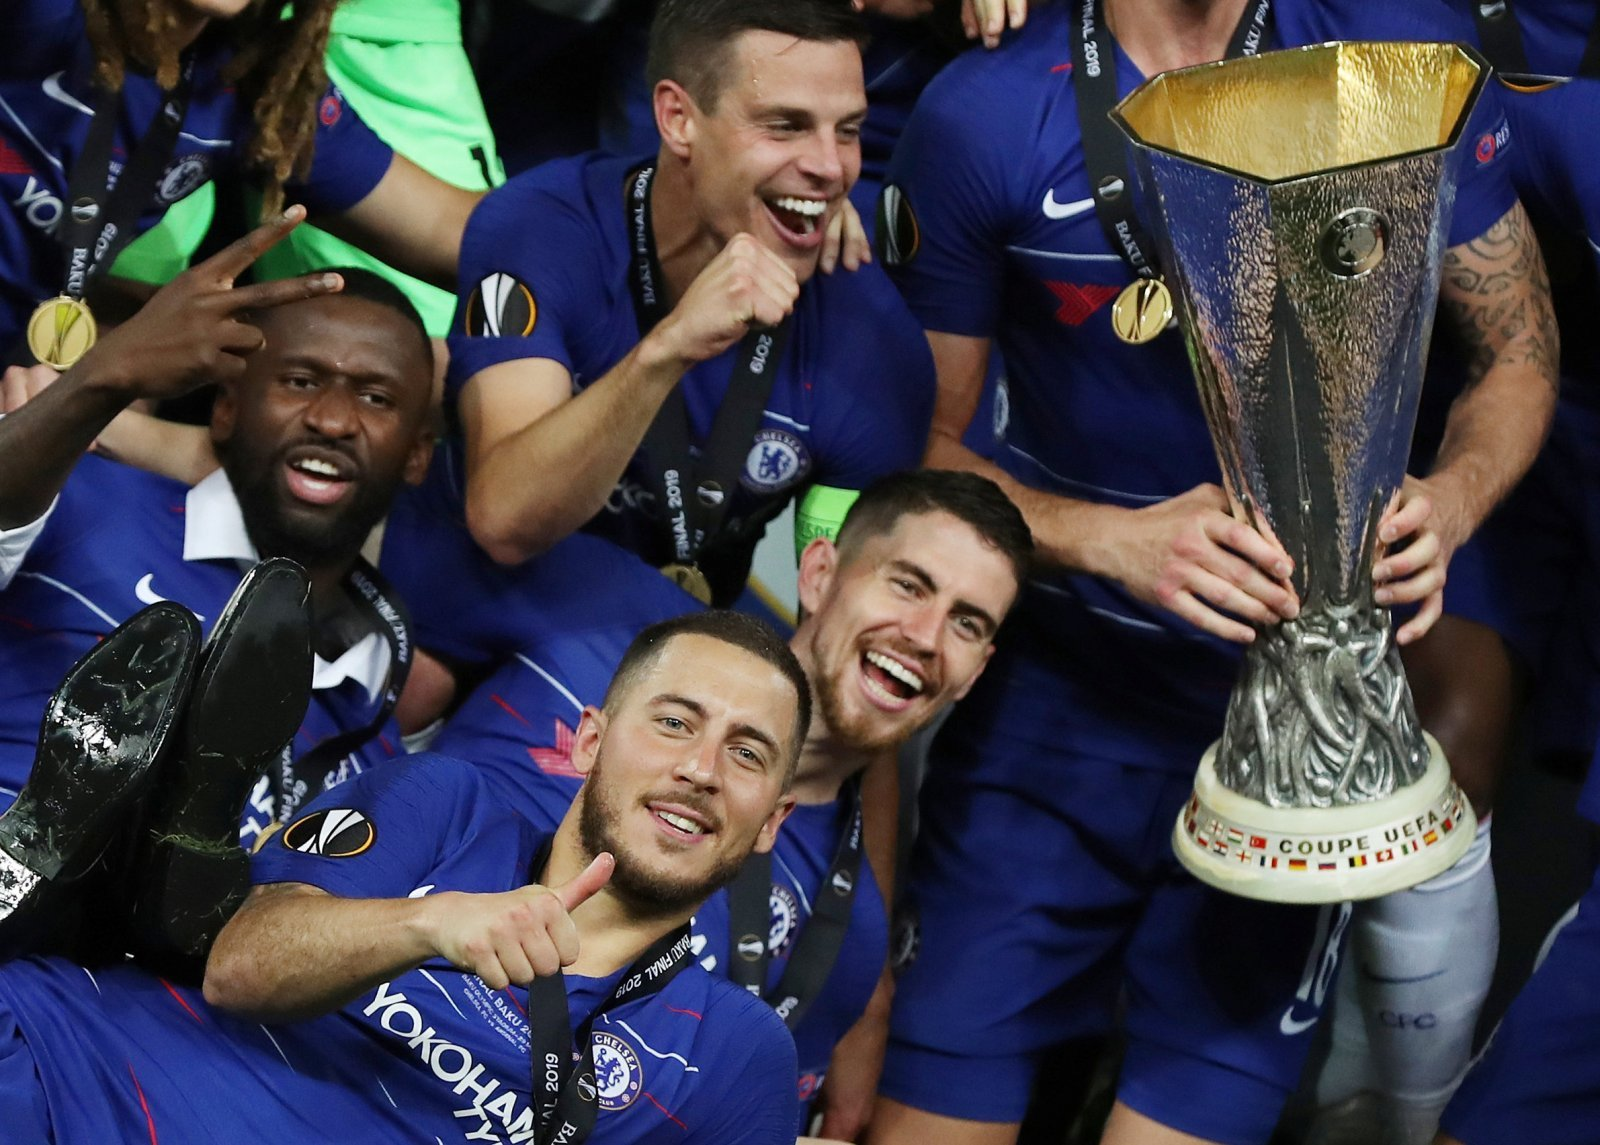 Chelsea: Eden Hazard's departure to Real Madrid would be heartbreaking for Blues fans